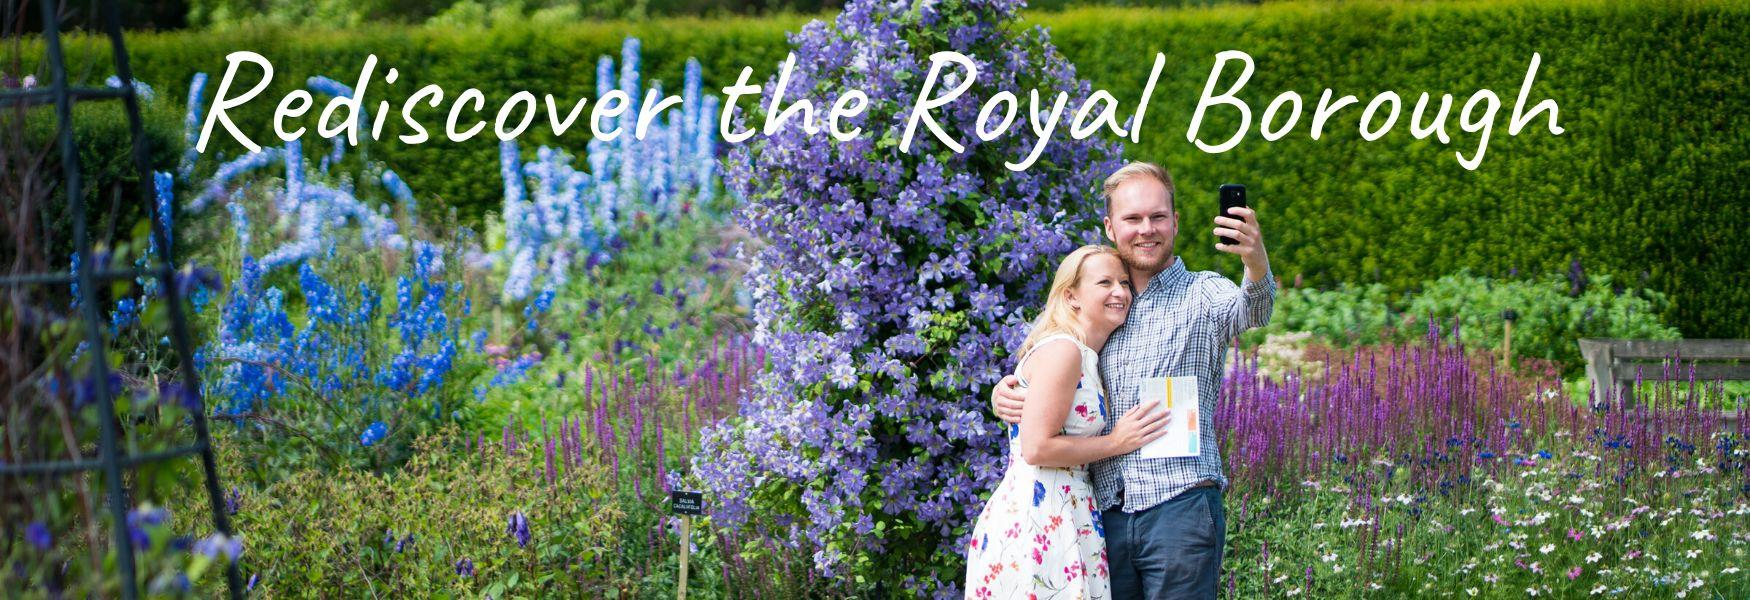 Two people at The Savill Garden, Windsor Great Park.  Rediscover the Royal Borough